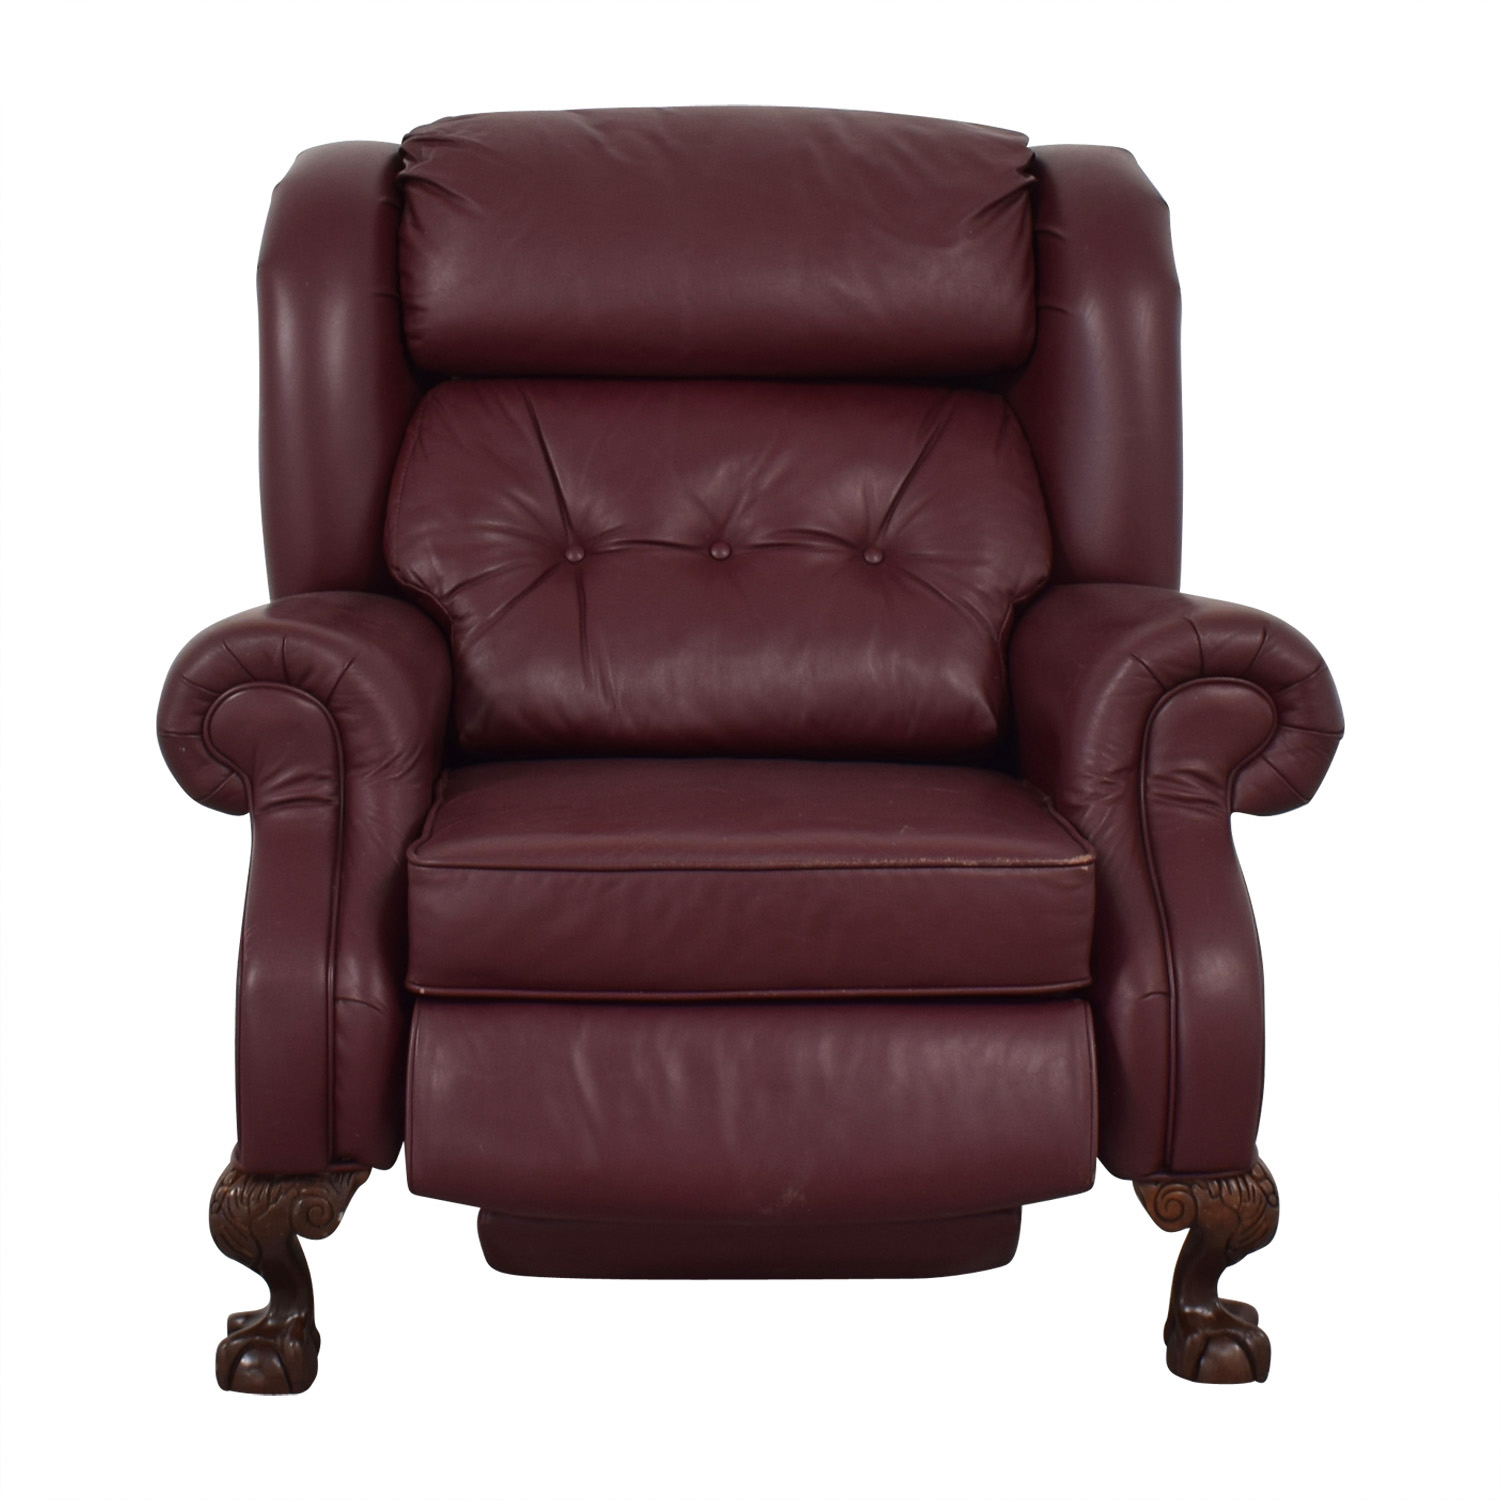 PeopLoungers PeopLoungers Burgundy Recliner on sale